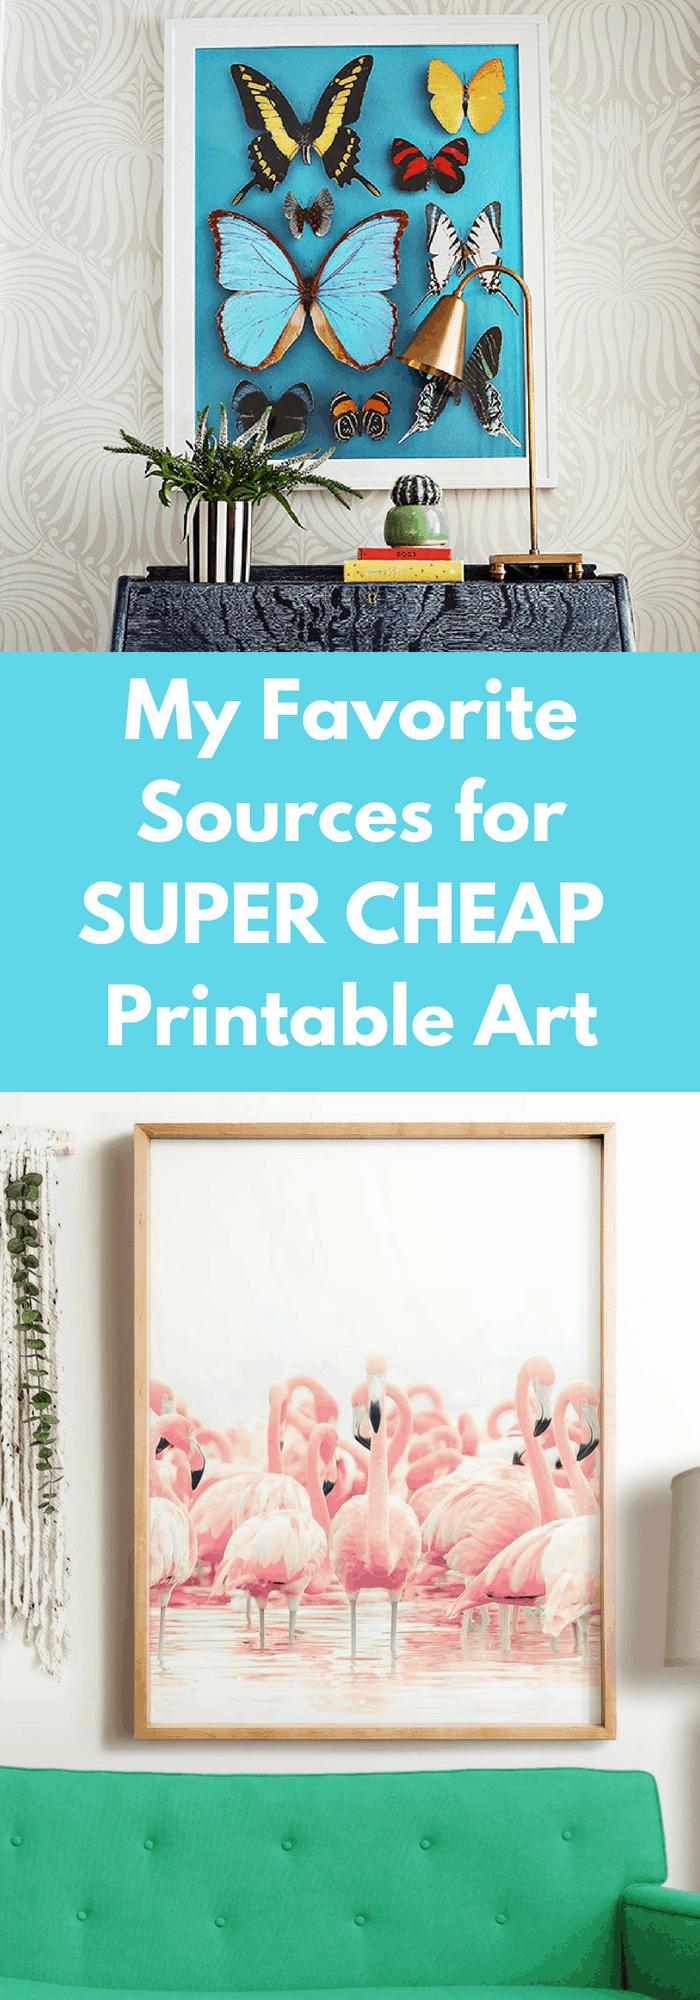 My Favorite Sources for Super Cheap Printable Art